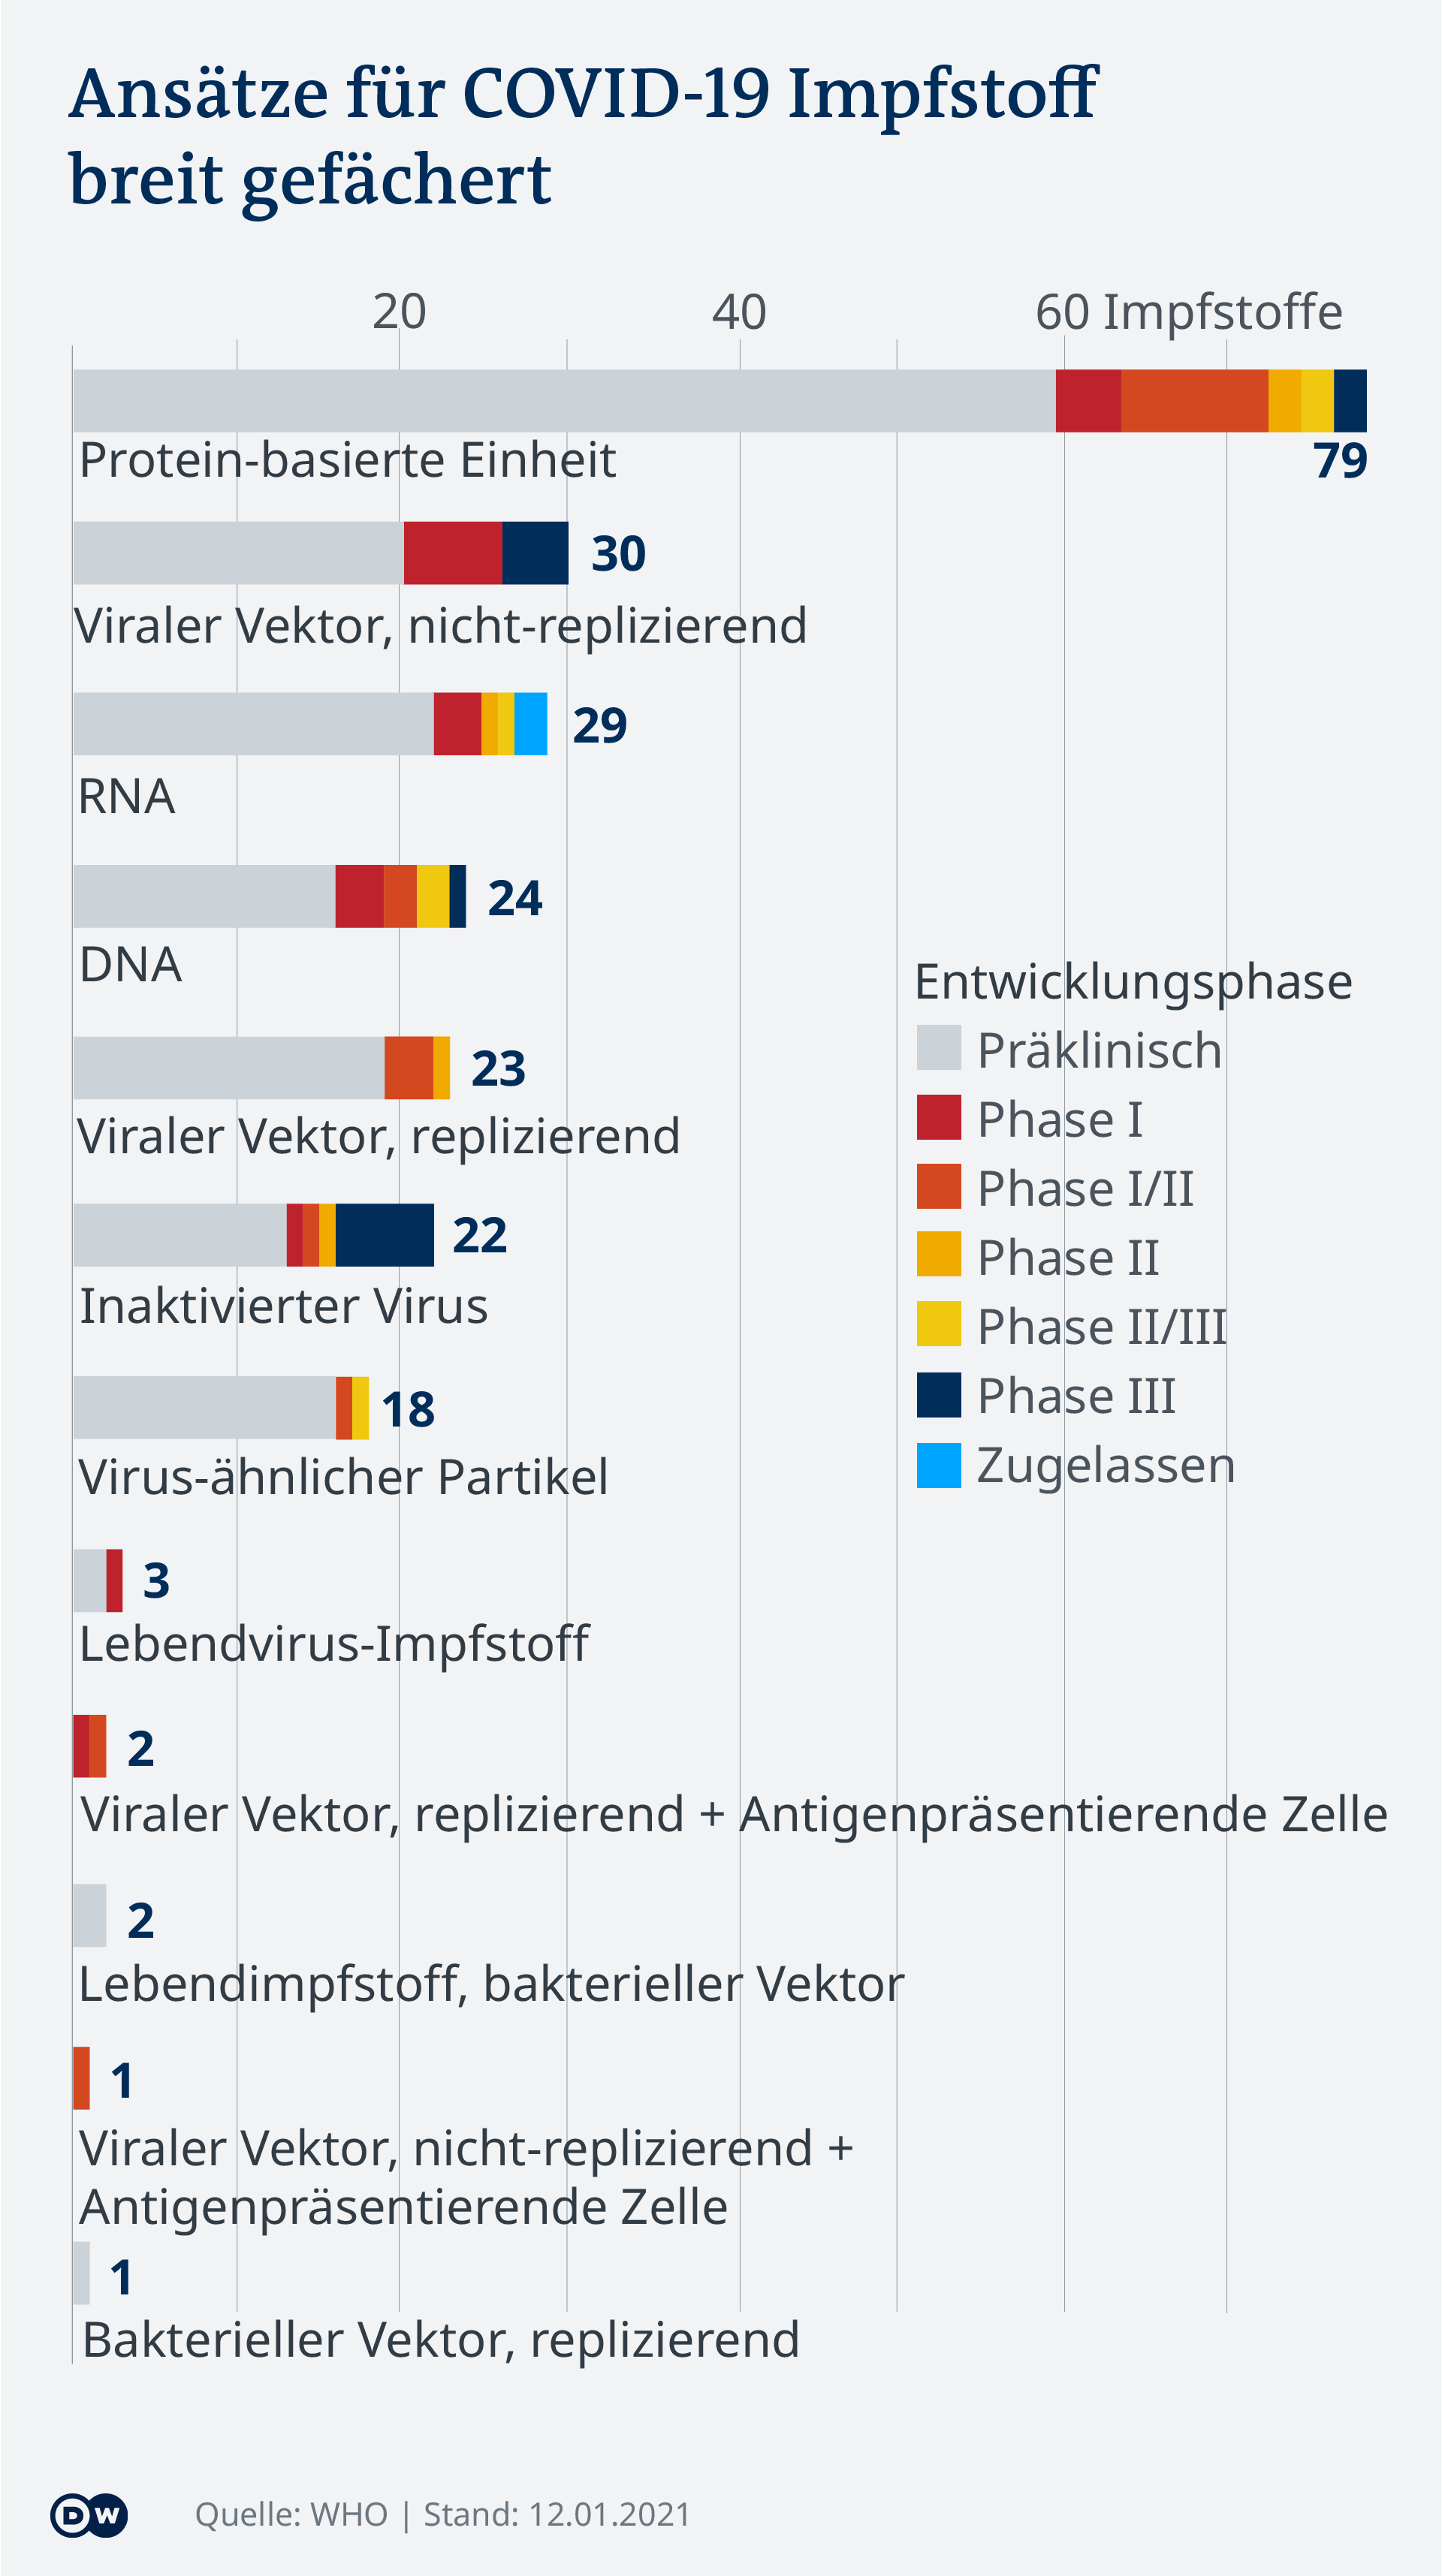 Data visualization - COVID-19 vaccine tracker - Types - Update Jan 14, 2021 - German